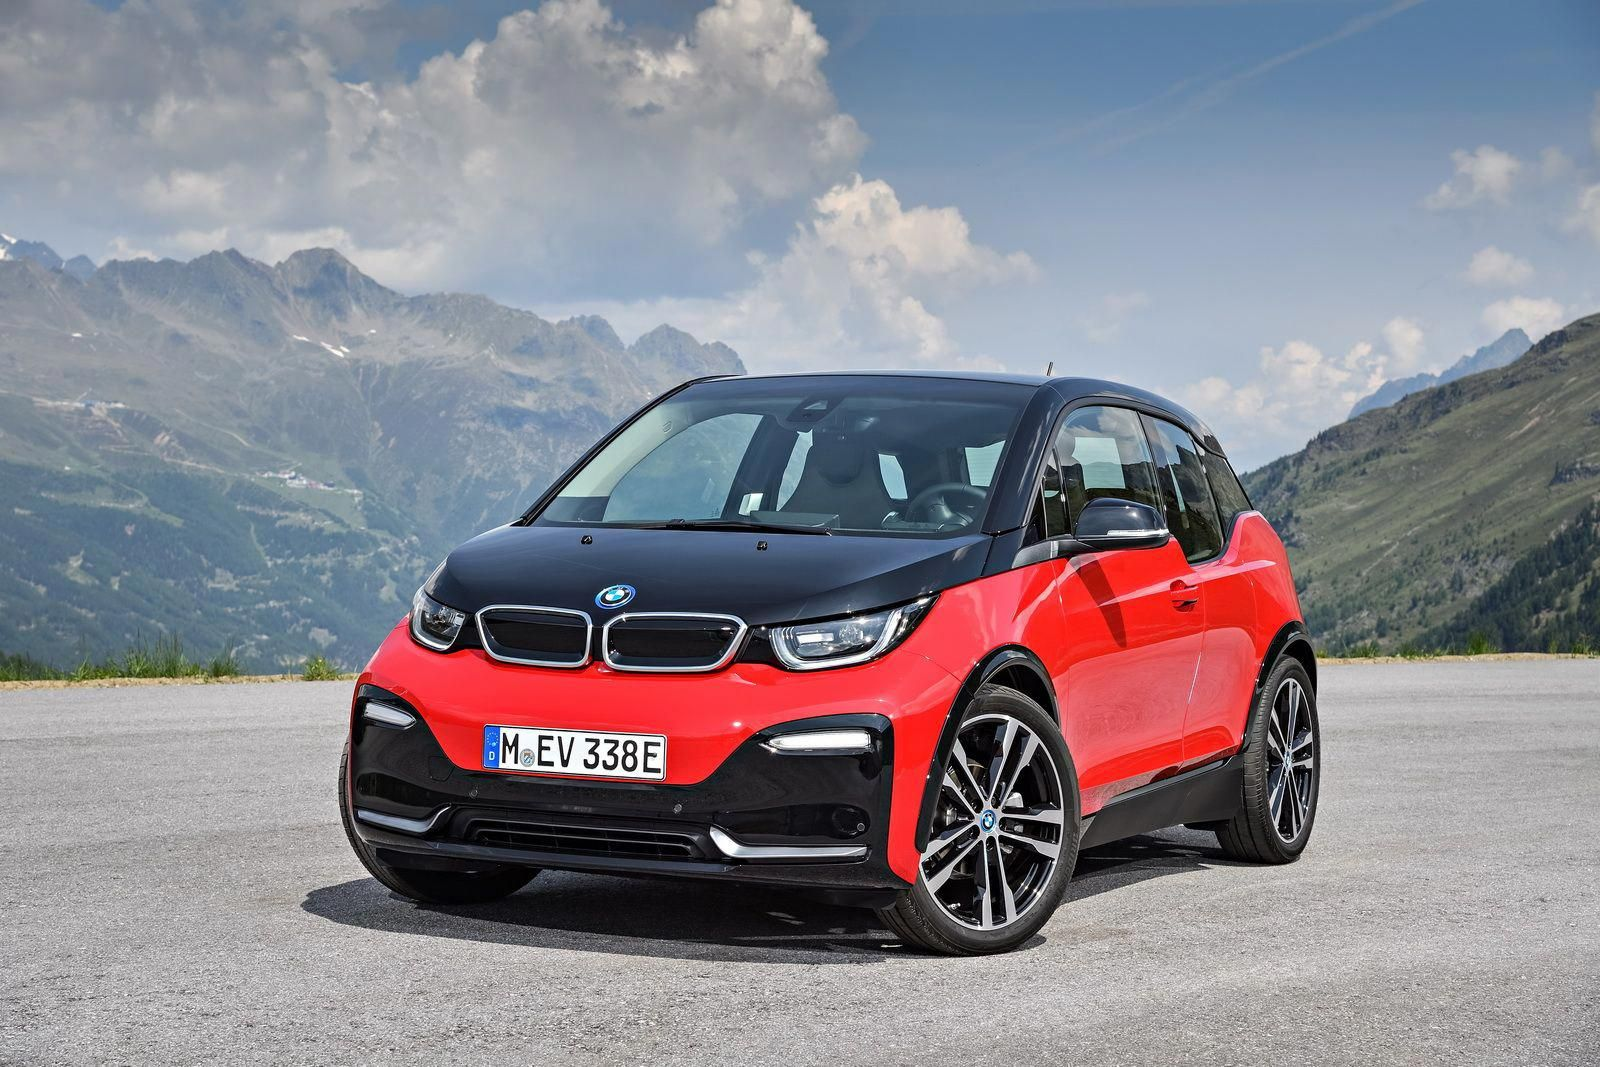 Facelifted 2018 Bmw I3 And Sportier I3s On Sale In The Uk From